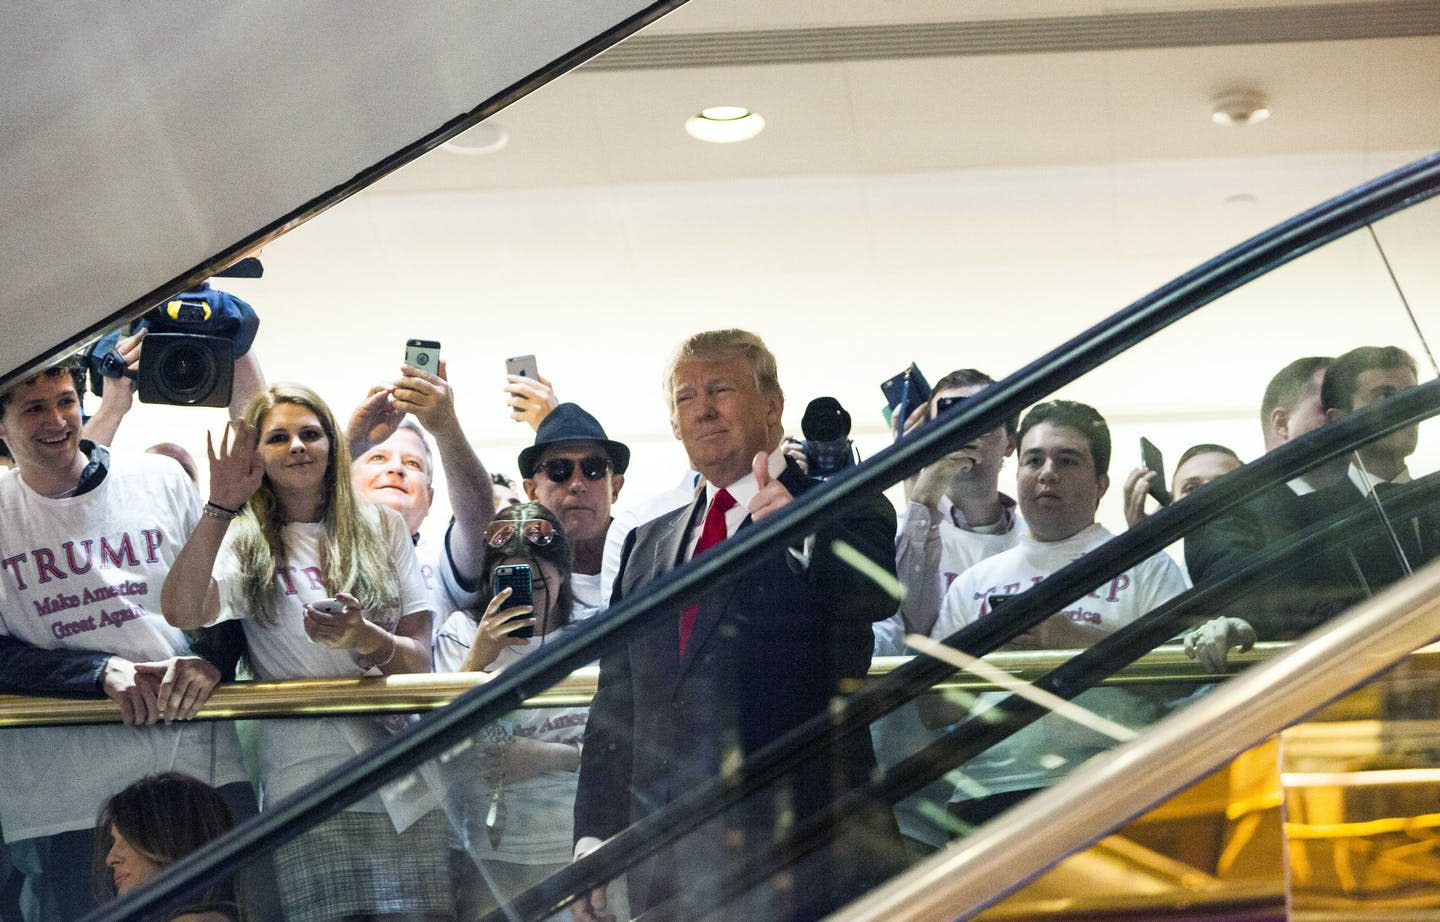 From Trump to Trudeau, the escalator is a favorite symbol of political campaigns